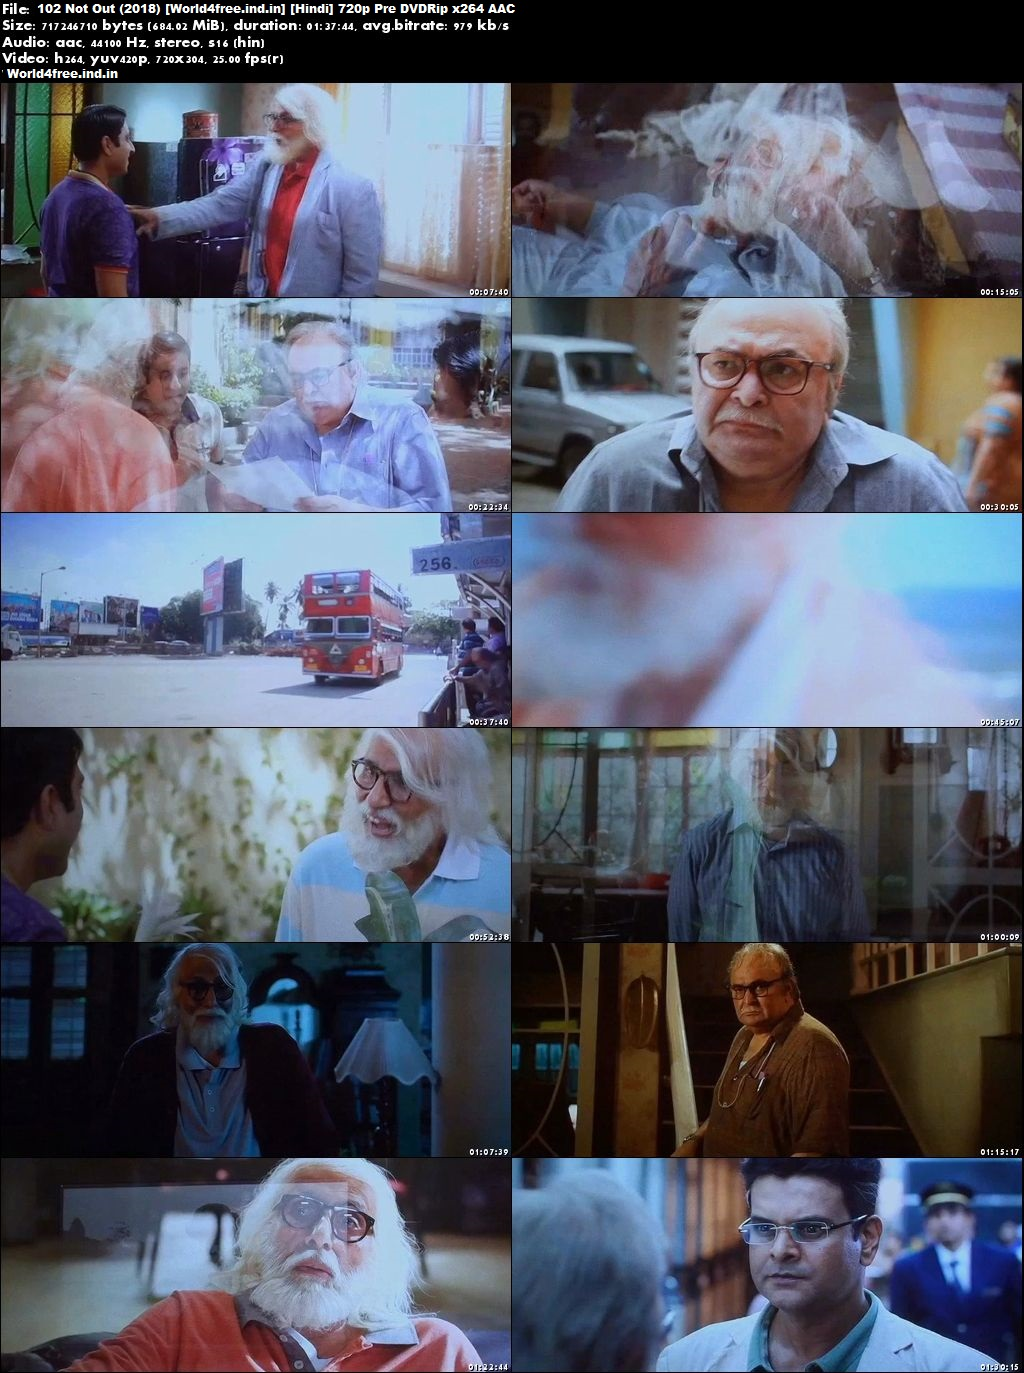 102 Not Out 2018 world4free.ind.in Full Hindi Movie Download World4free